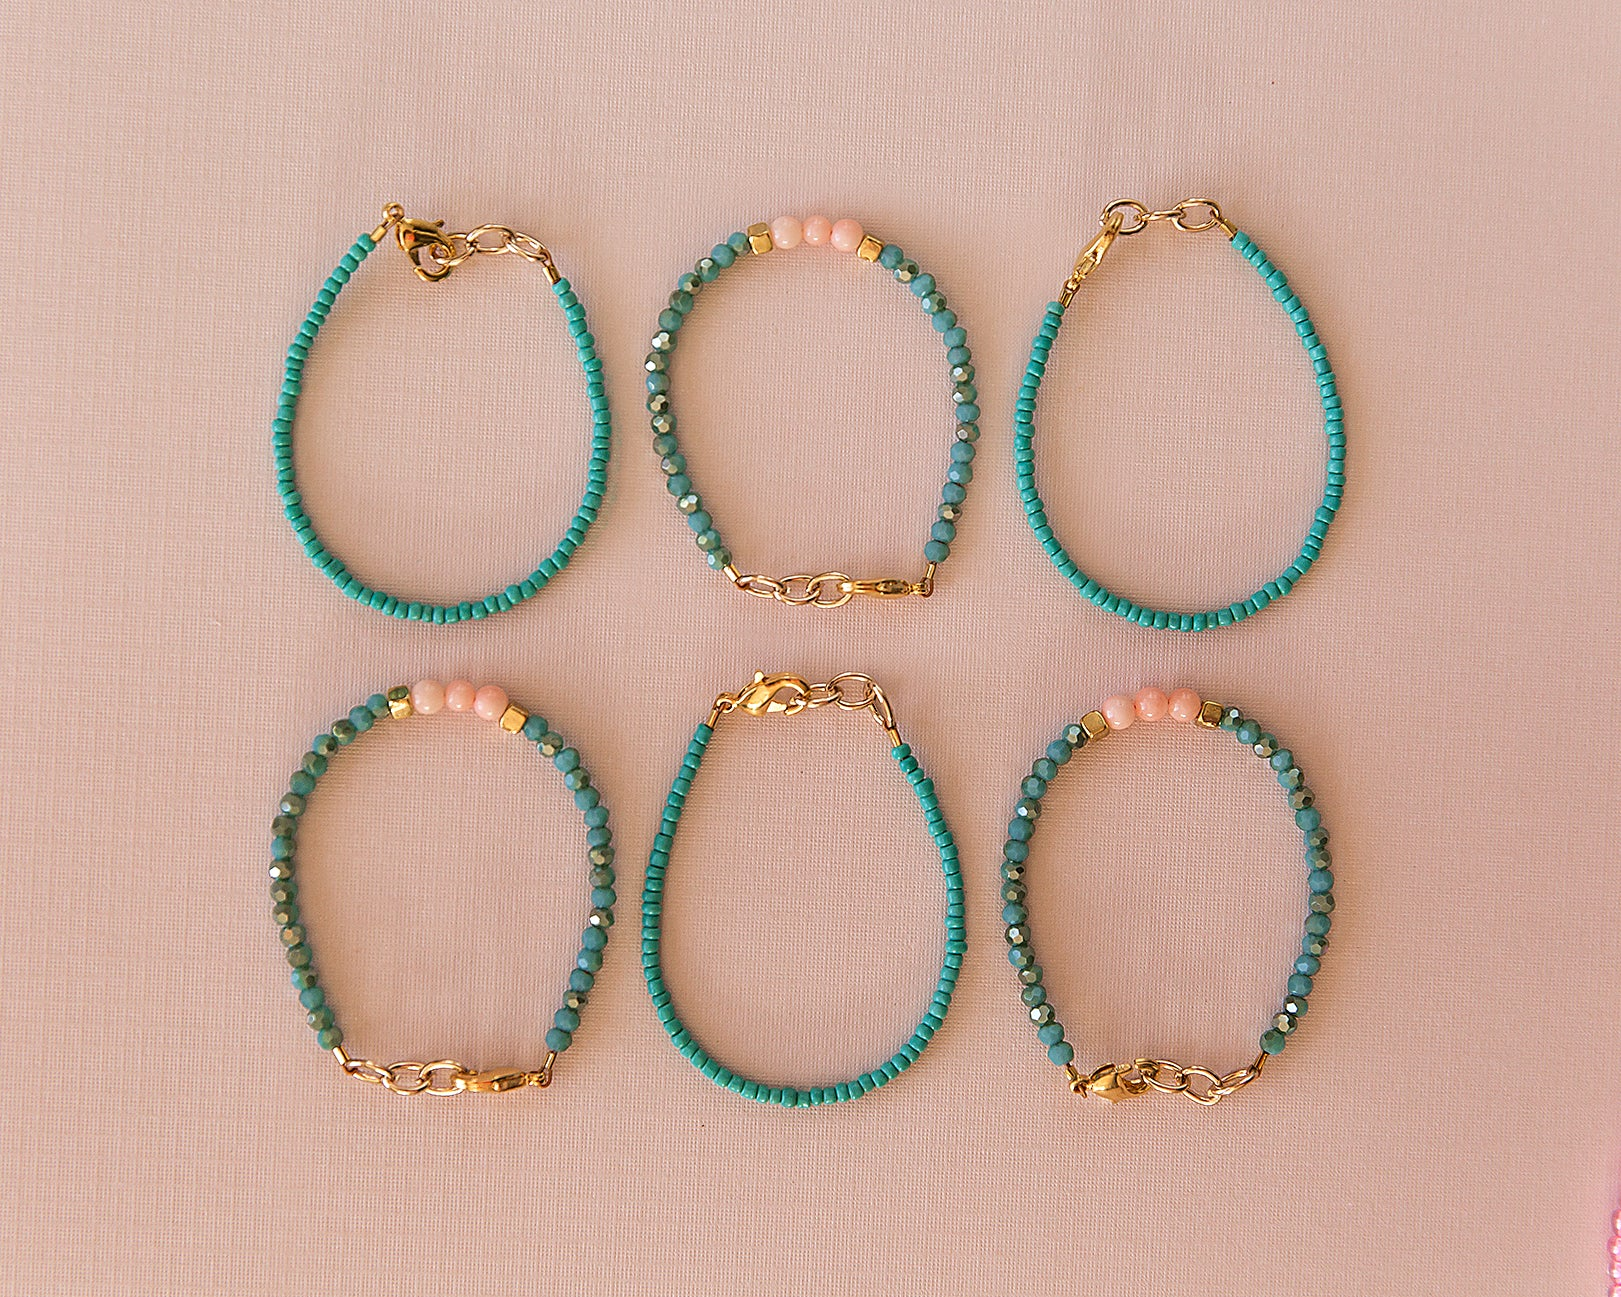 Dainty Bead Bracelet in Turquoise - Reverie Threads